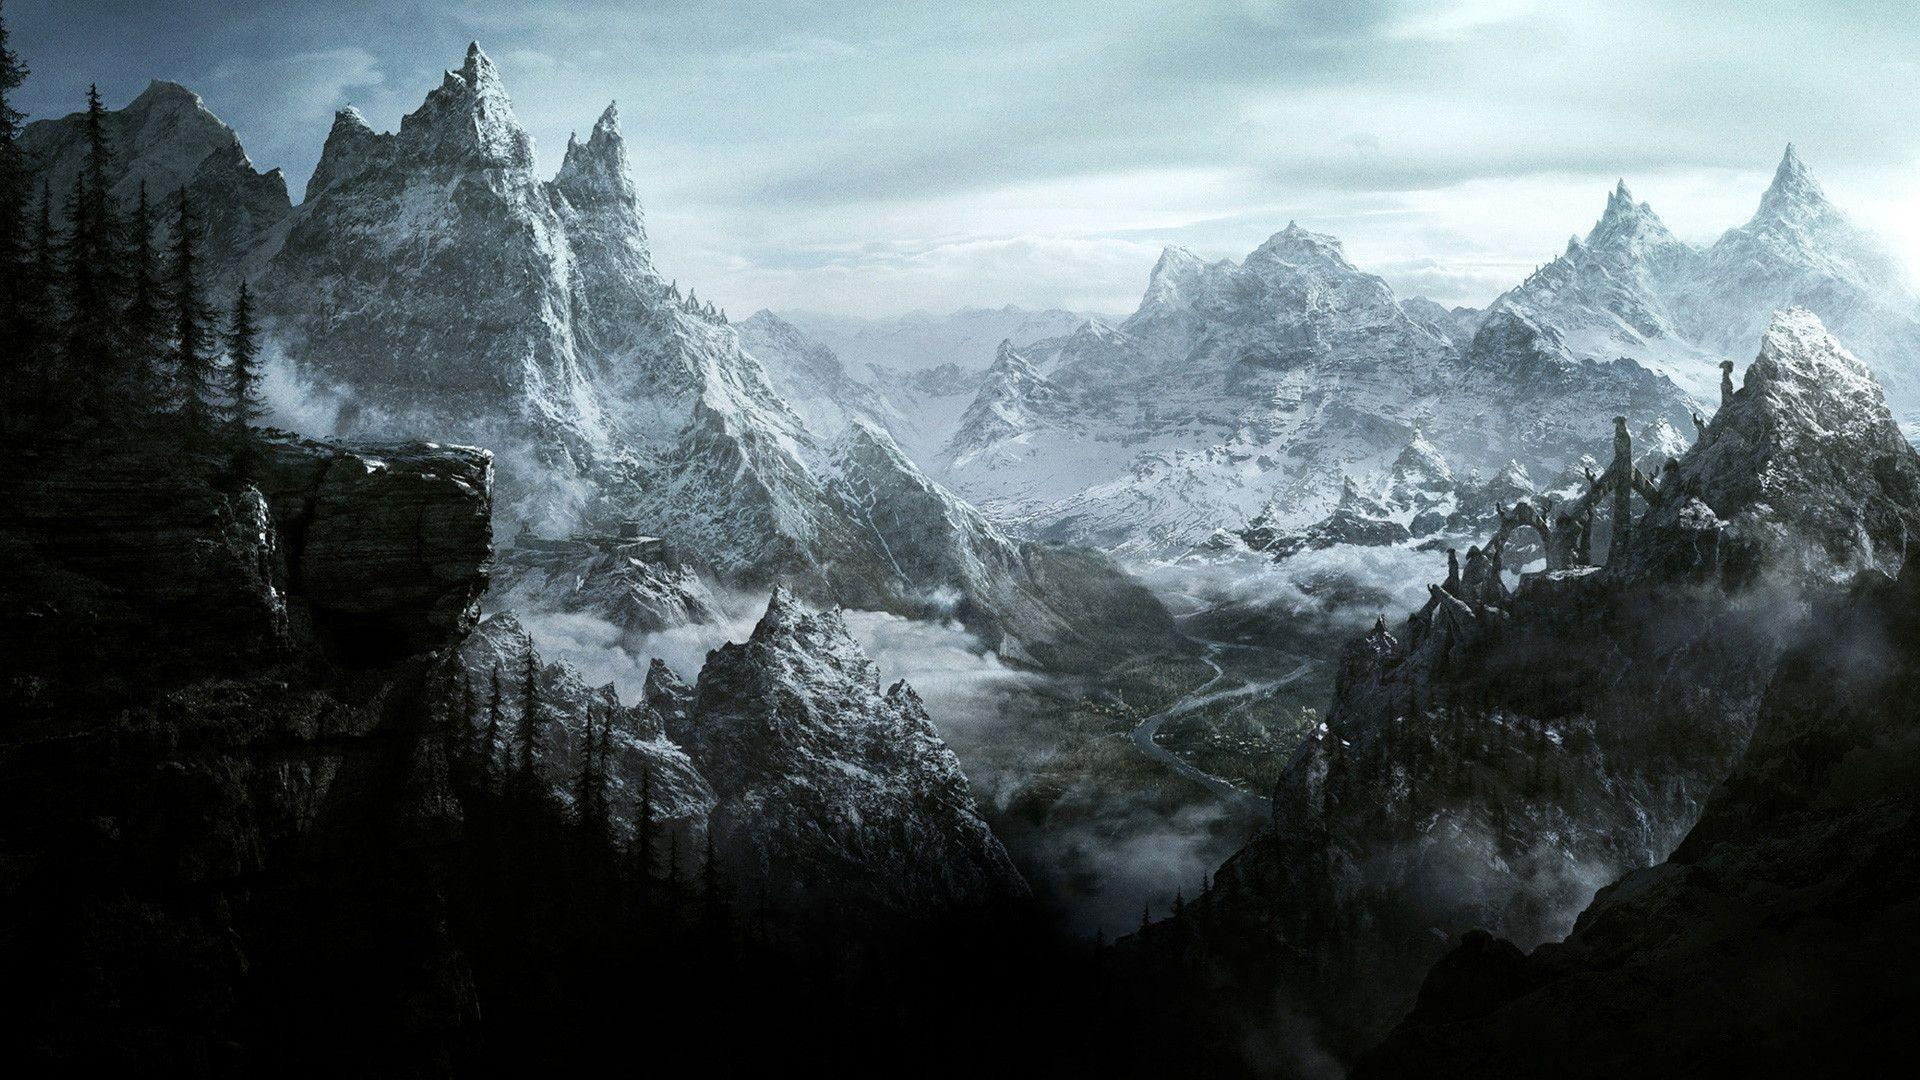 skyrim 1980 x 1040 wallpaper - photo #16